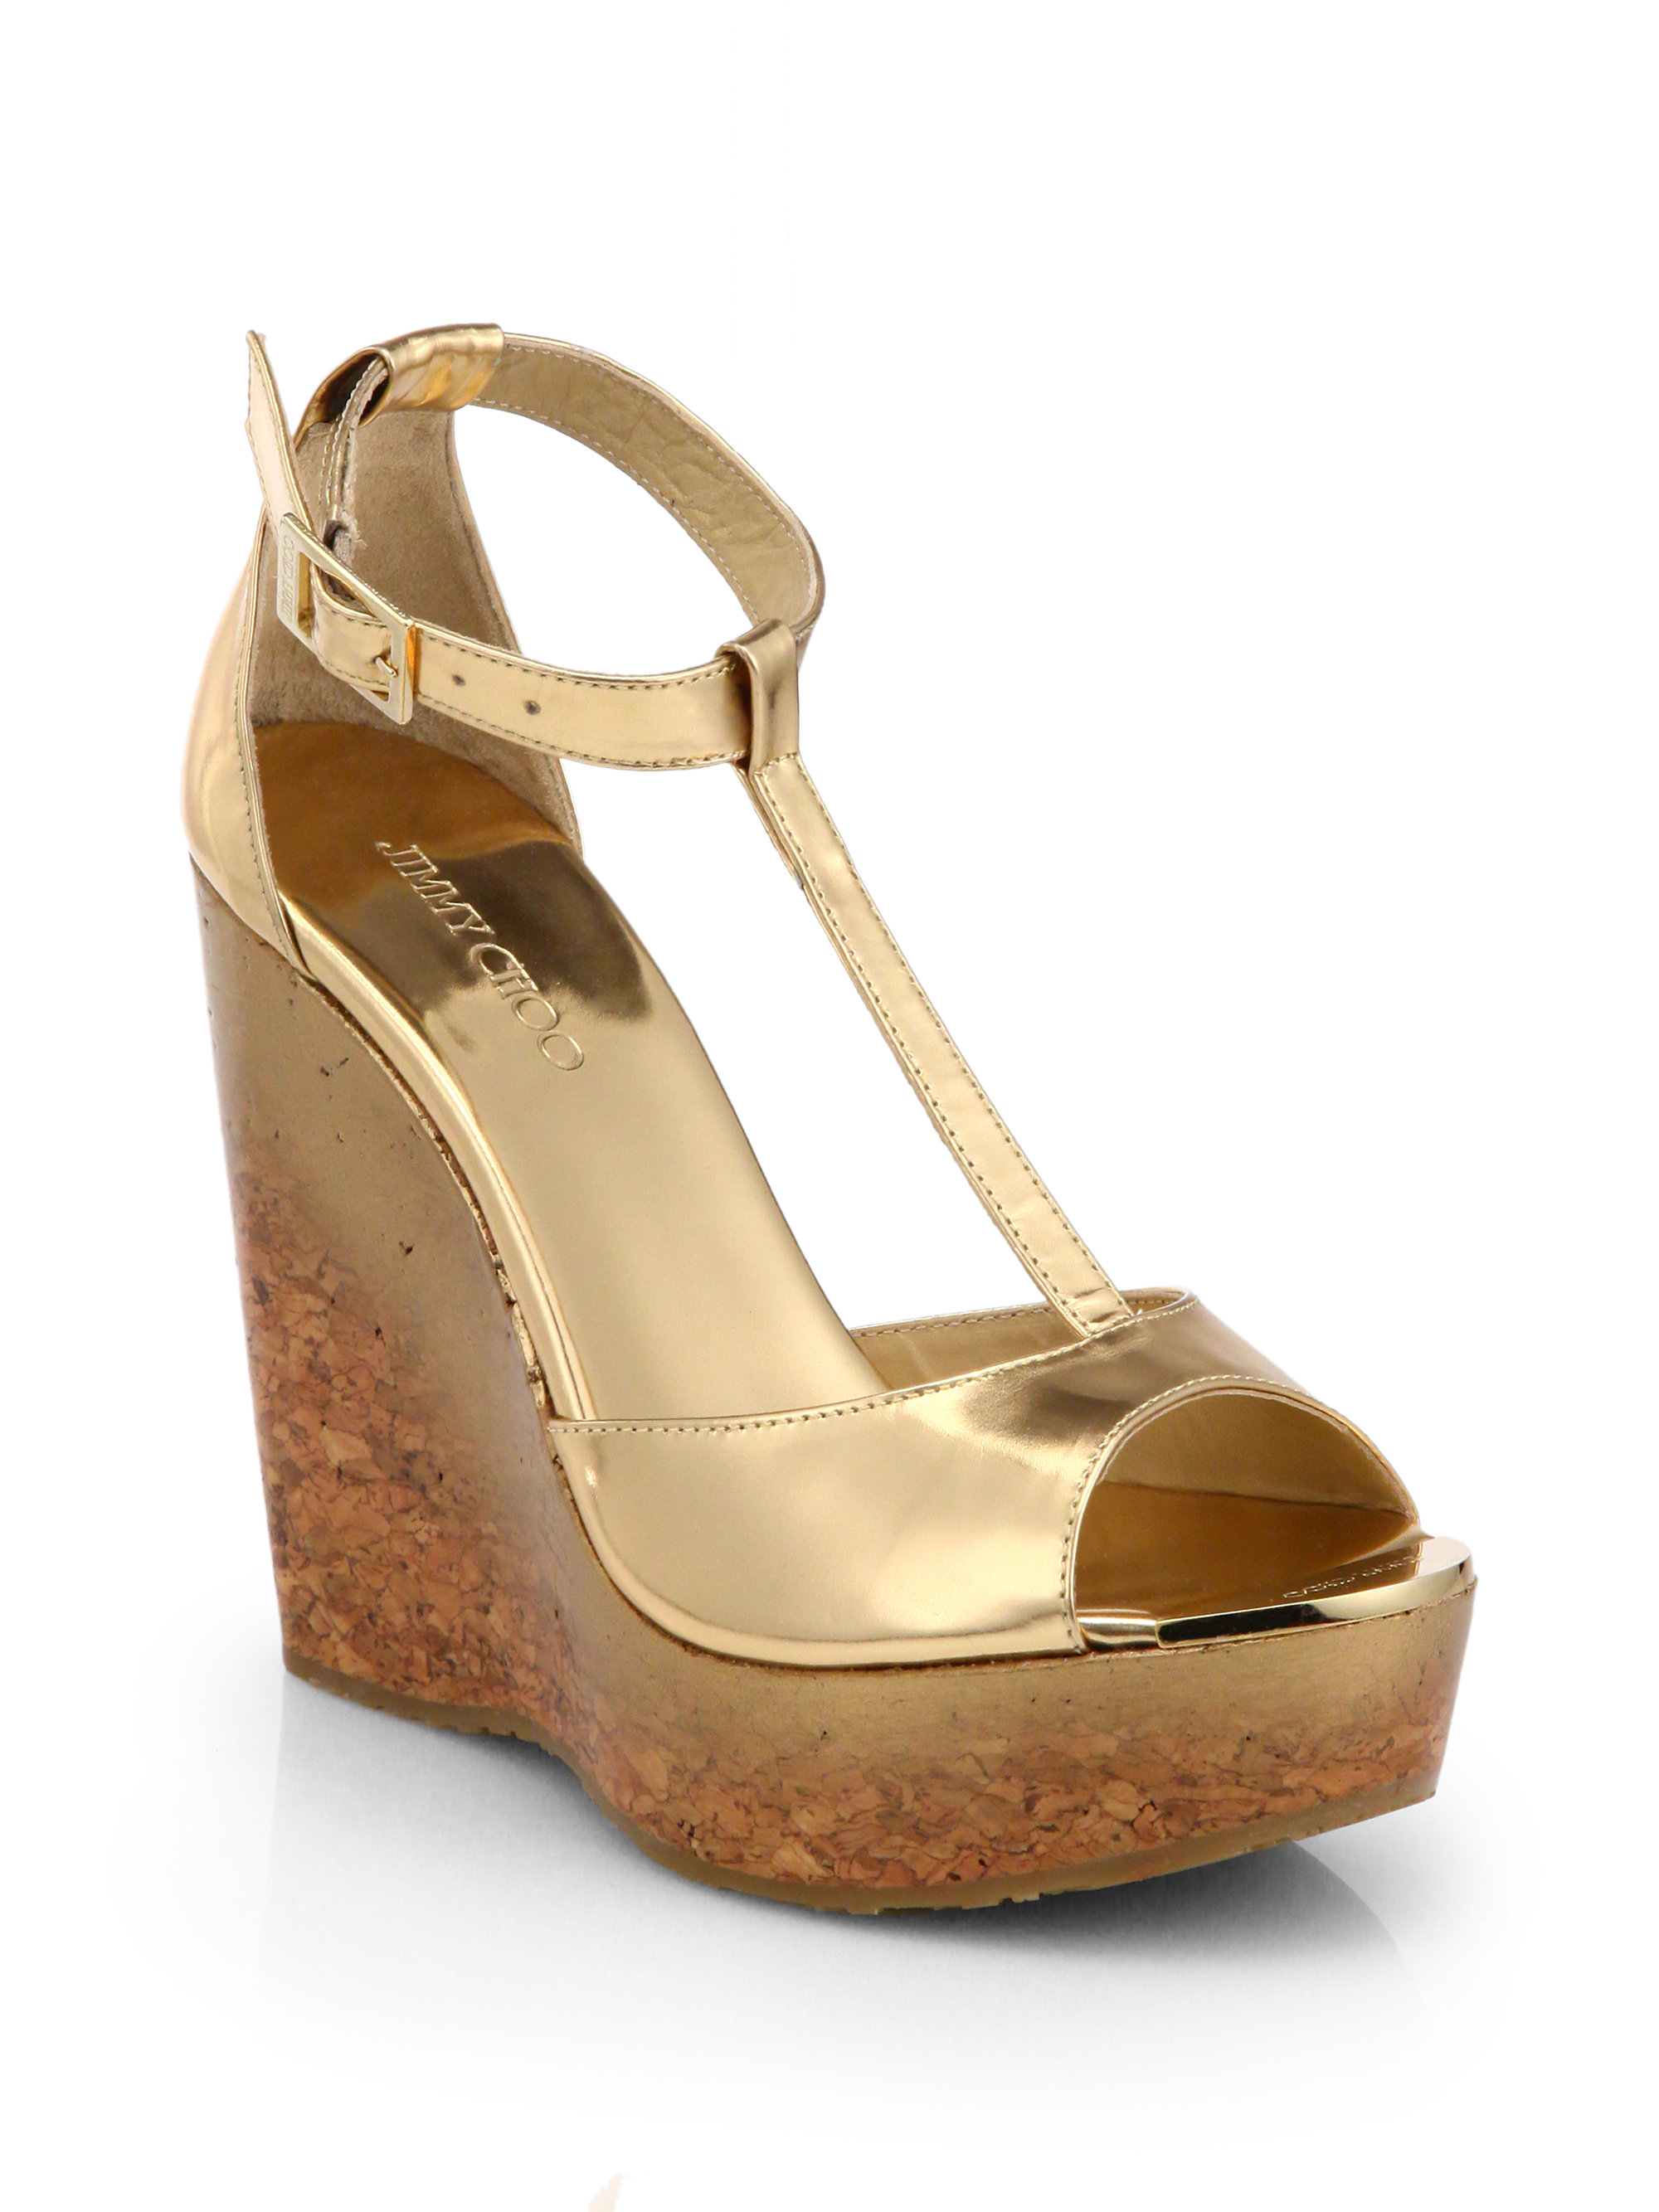 73db2d400b2b low cost jimmy choo gold sandals 03173 2995f  coupon code for lyst jimmy  choo pela degrade metallic leather cork wedge sandals ca41a d9044